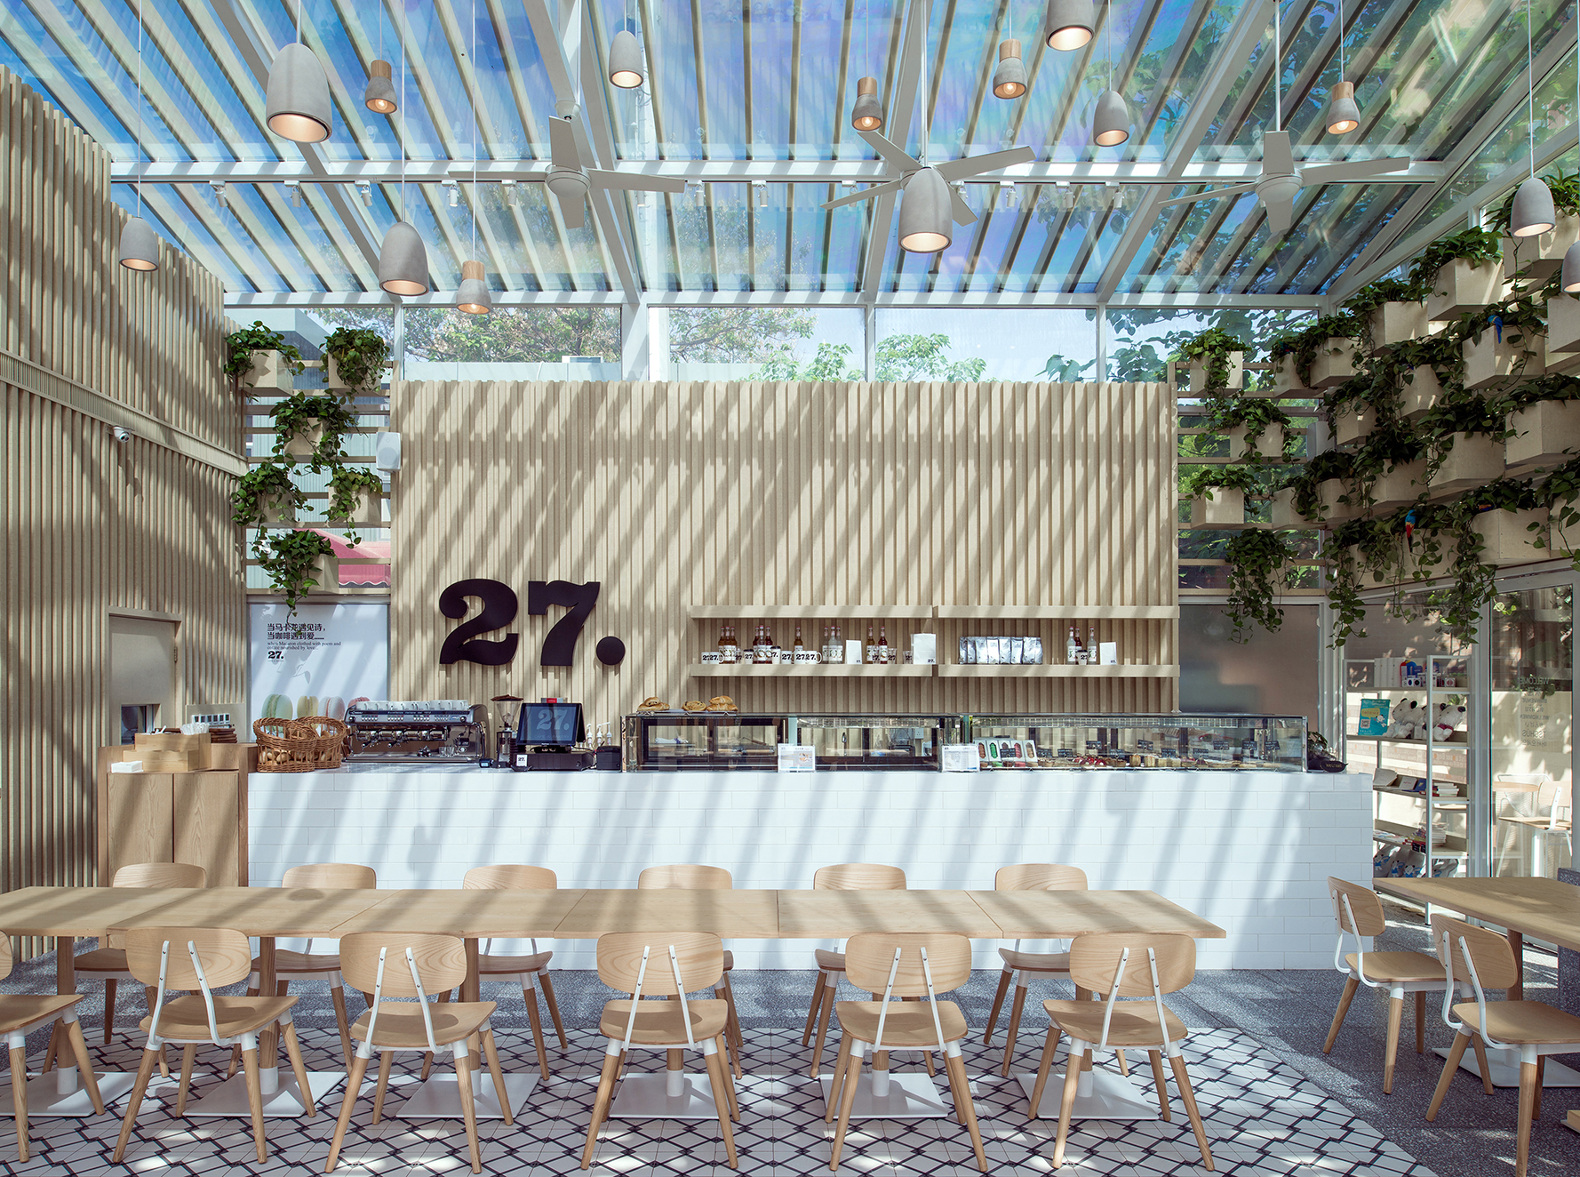 sustainable restaurant furniture. Beijing Cafe Shaped Like A Greenhouse Is Filled With Air-purifying Plants Sustainable Restaurant Furniture